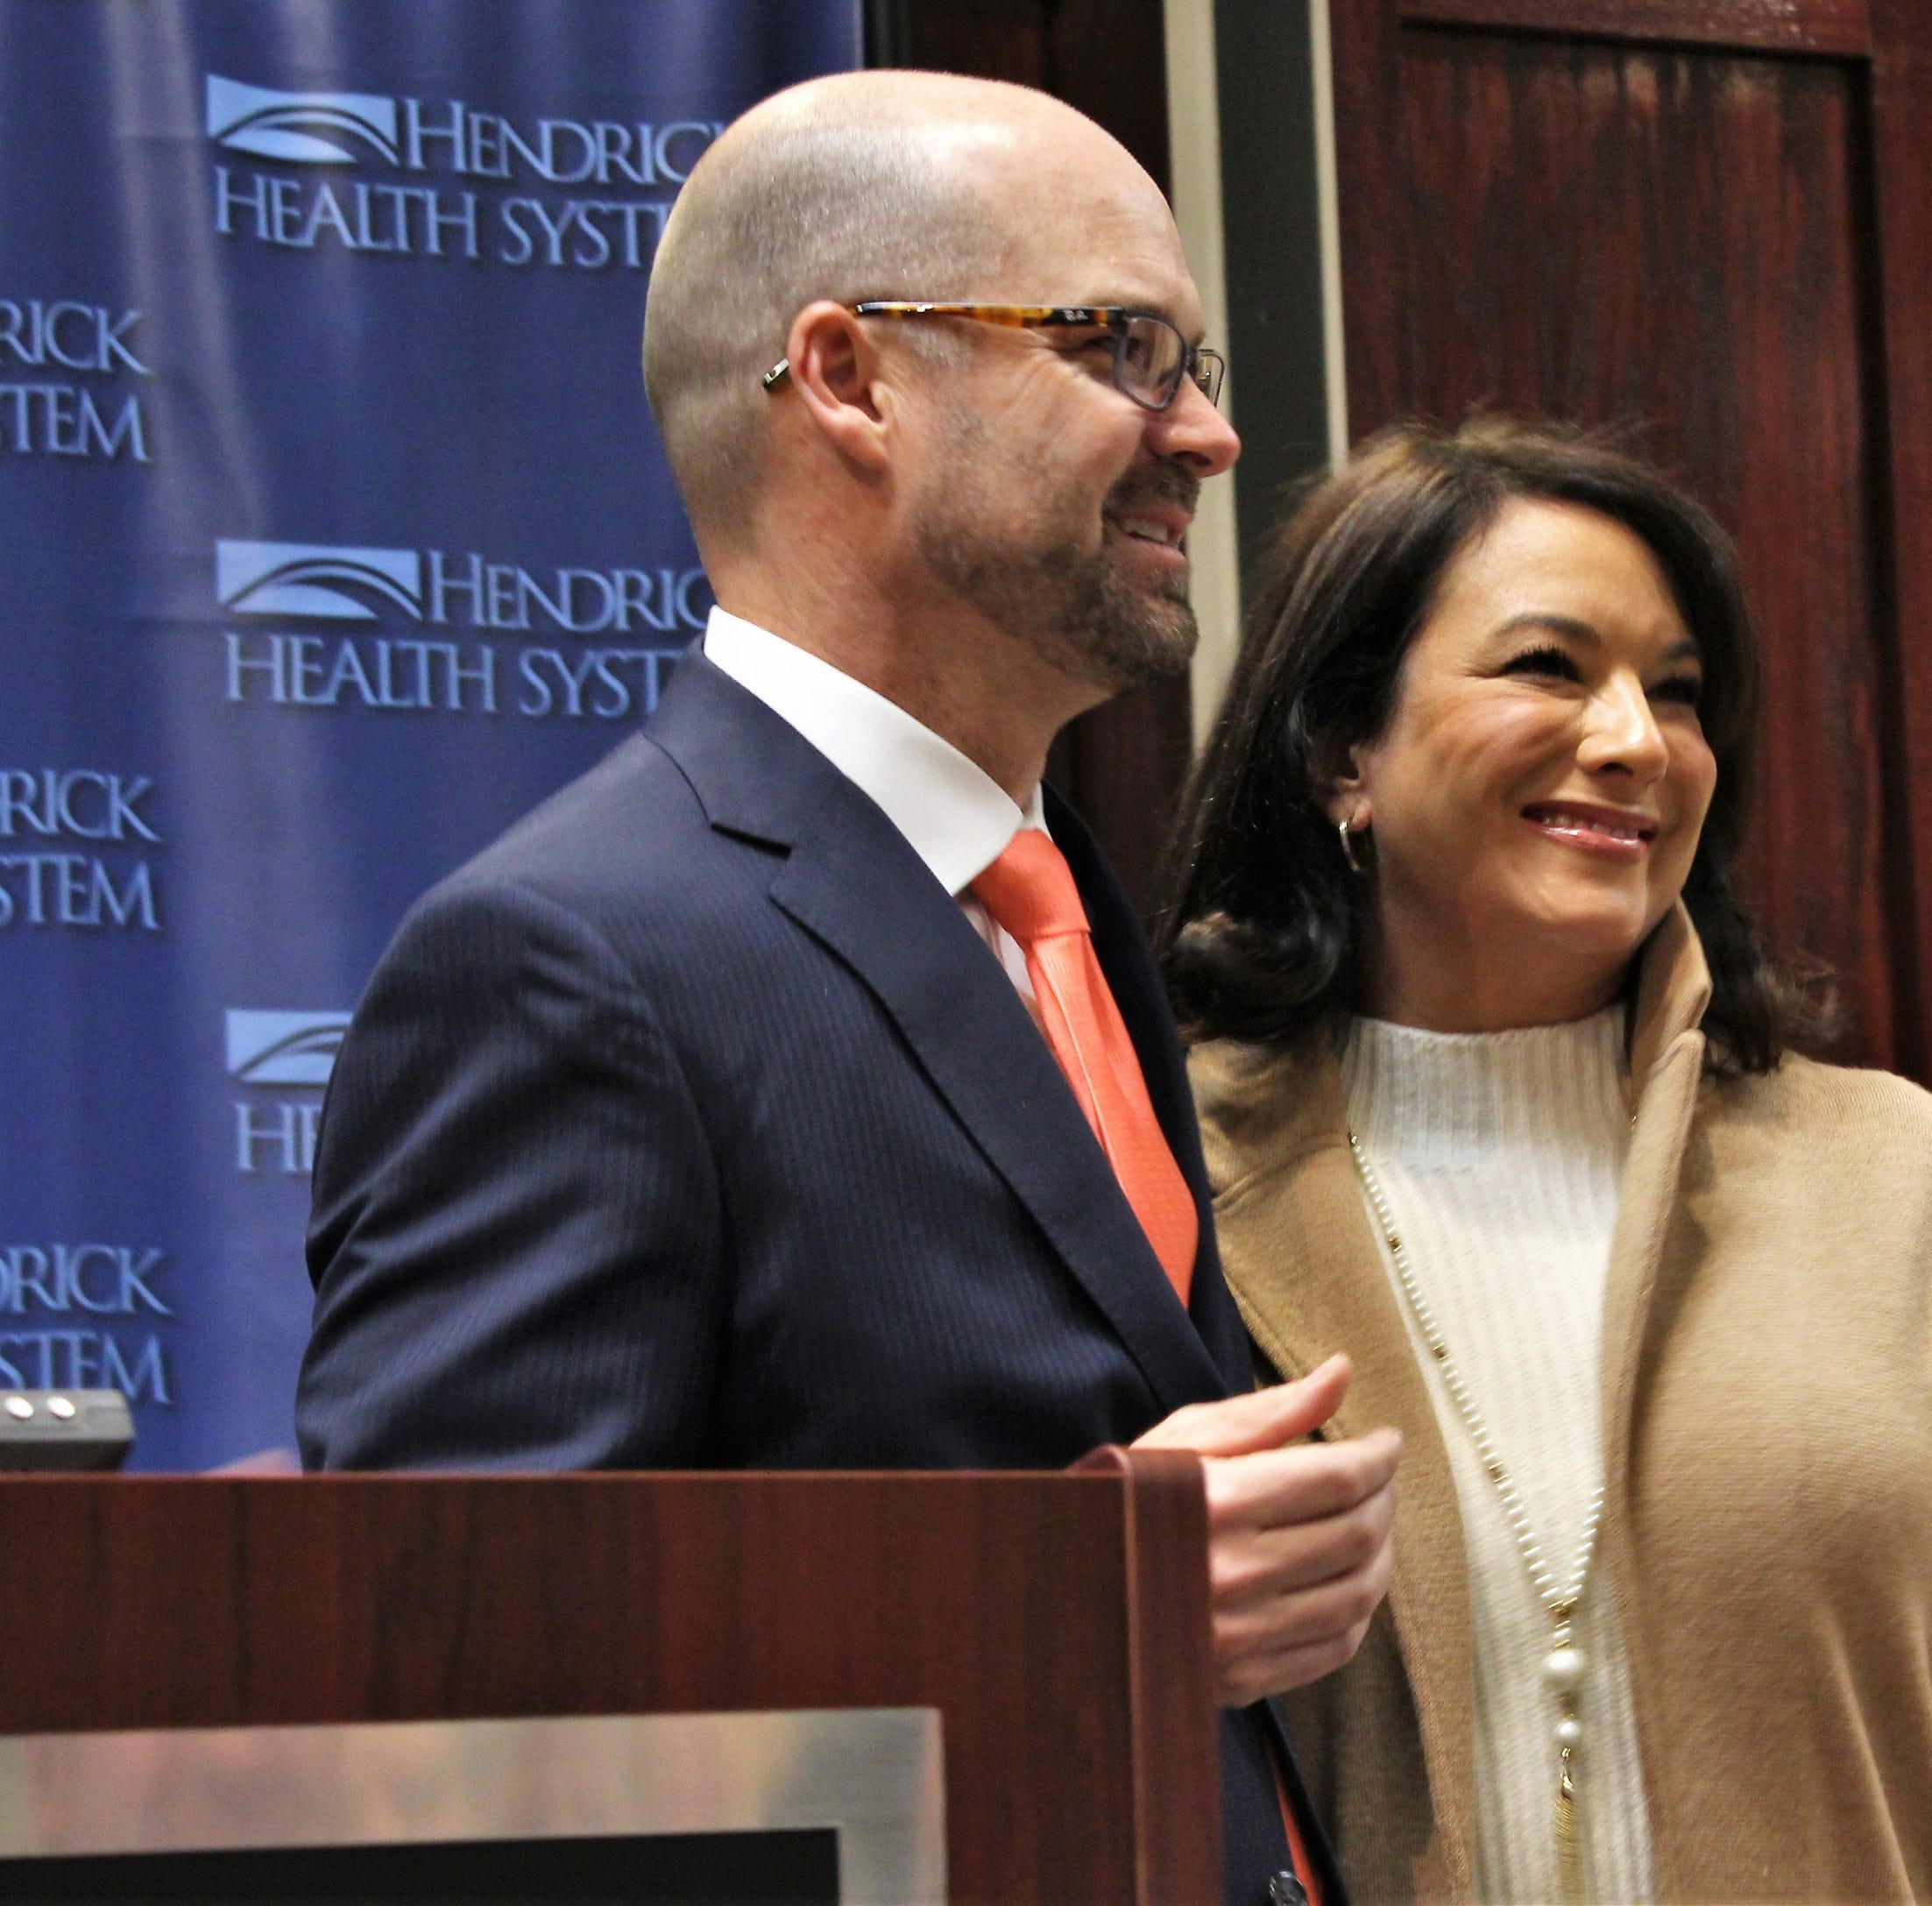 Hendrick Health System names Brad Holland president and CEO